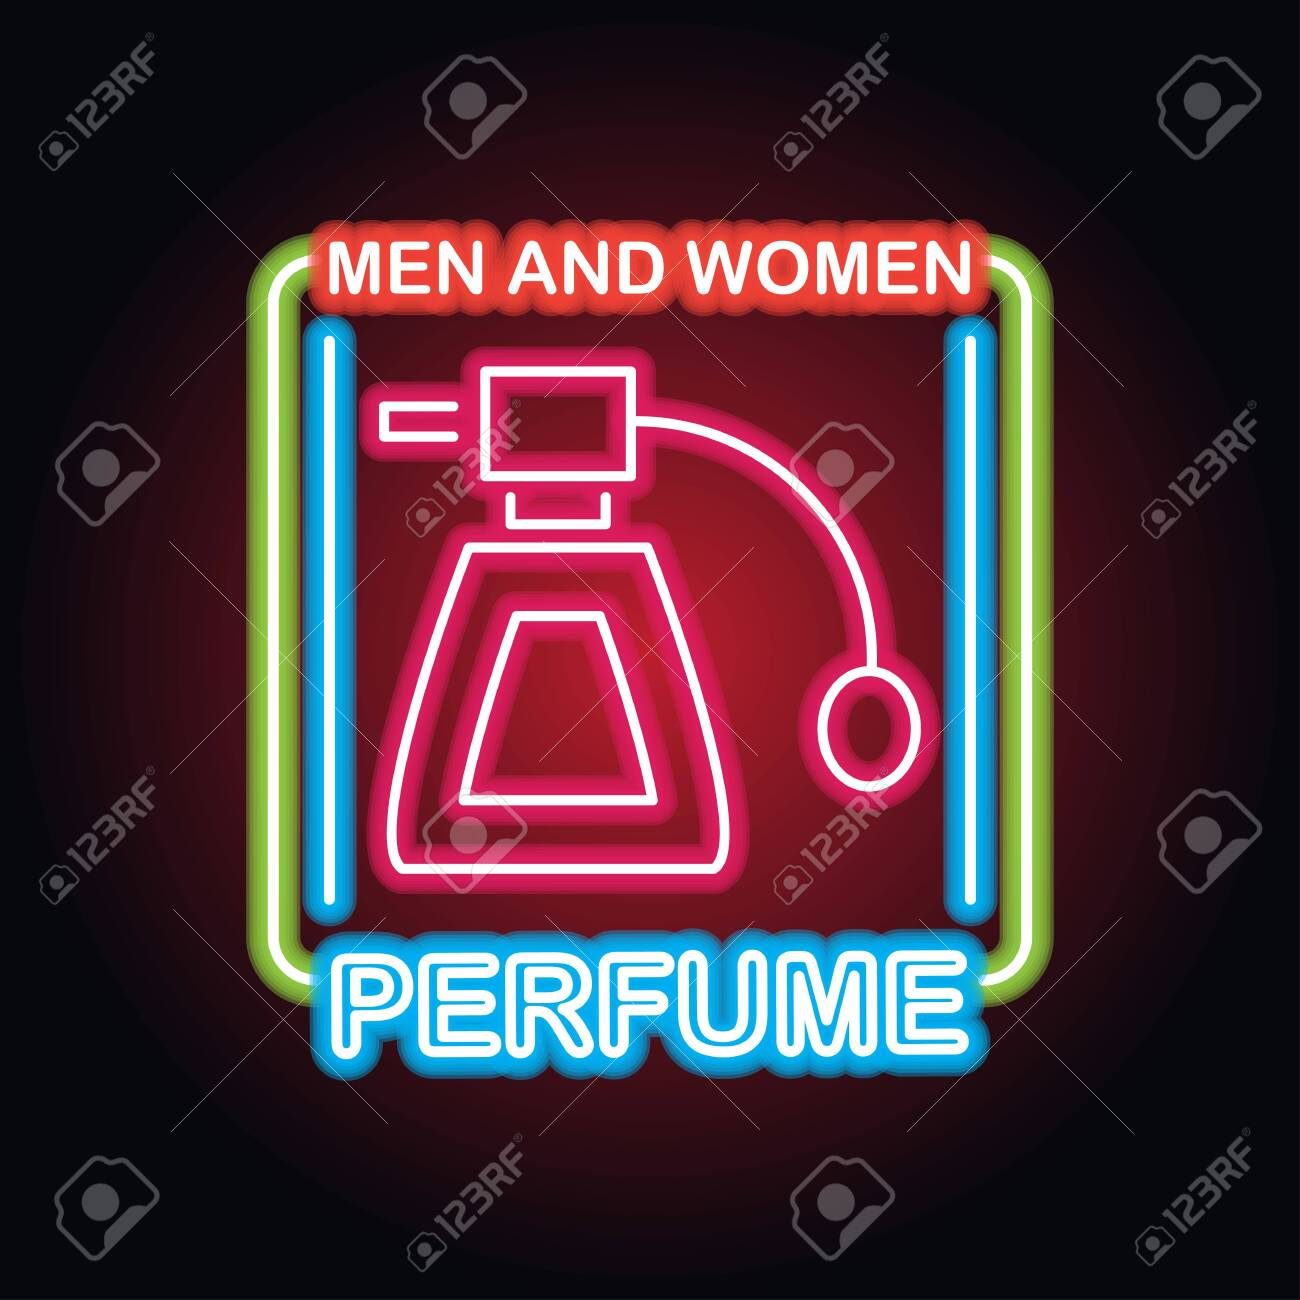 men and women perfume fragrance with neon sign effect, vector illustration - 125211060